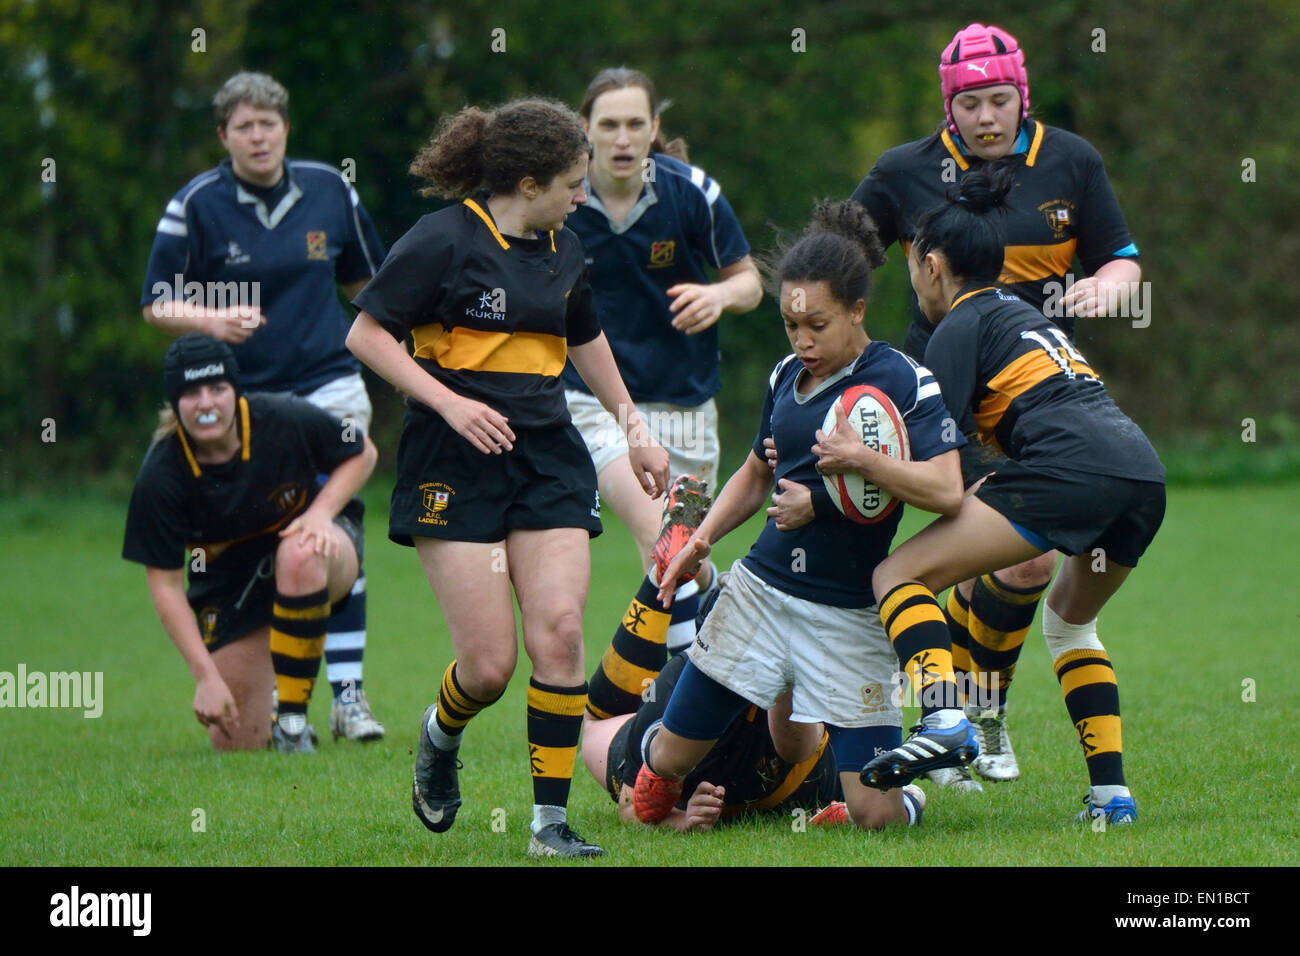 Manchester UK  25th April 2015 Didsbury Toc H Ladies play their first competitive match against Eccles Ladies 2. - Stock Image